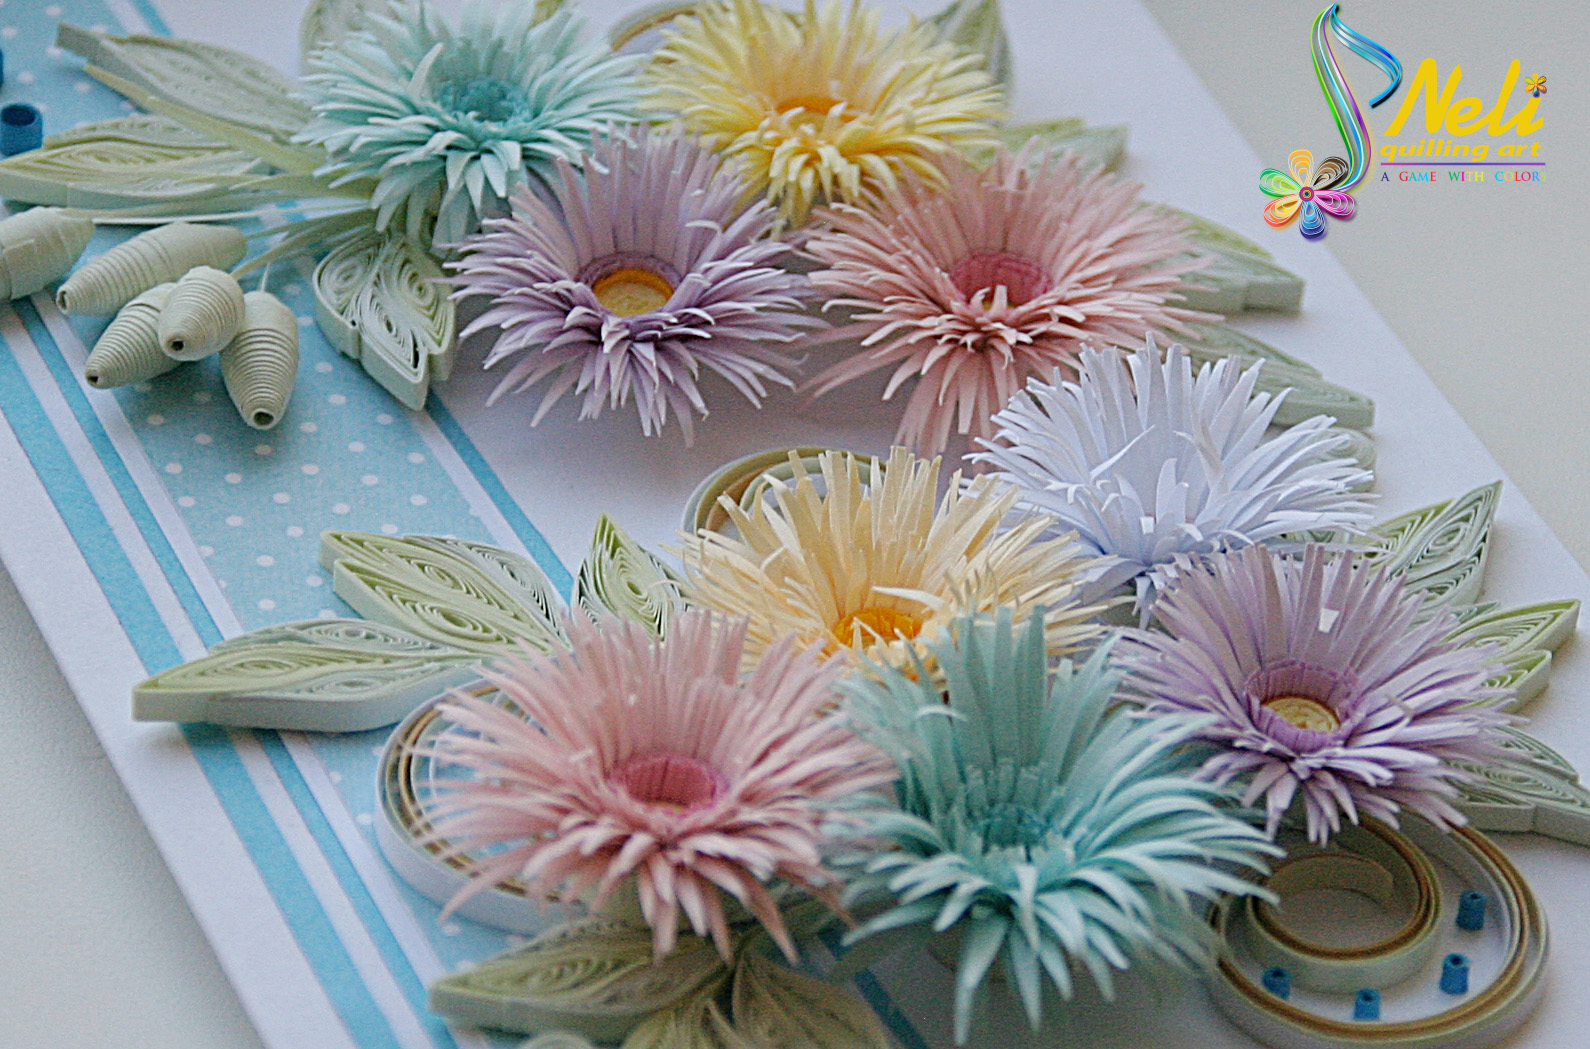 quilling projects Quilling project requirements ( usual quilling tools, scissors, glue, seed beads for 2 flower centres,  photos of paper quilling projects.